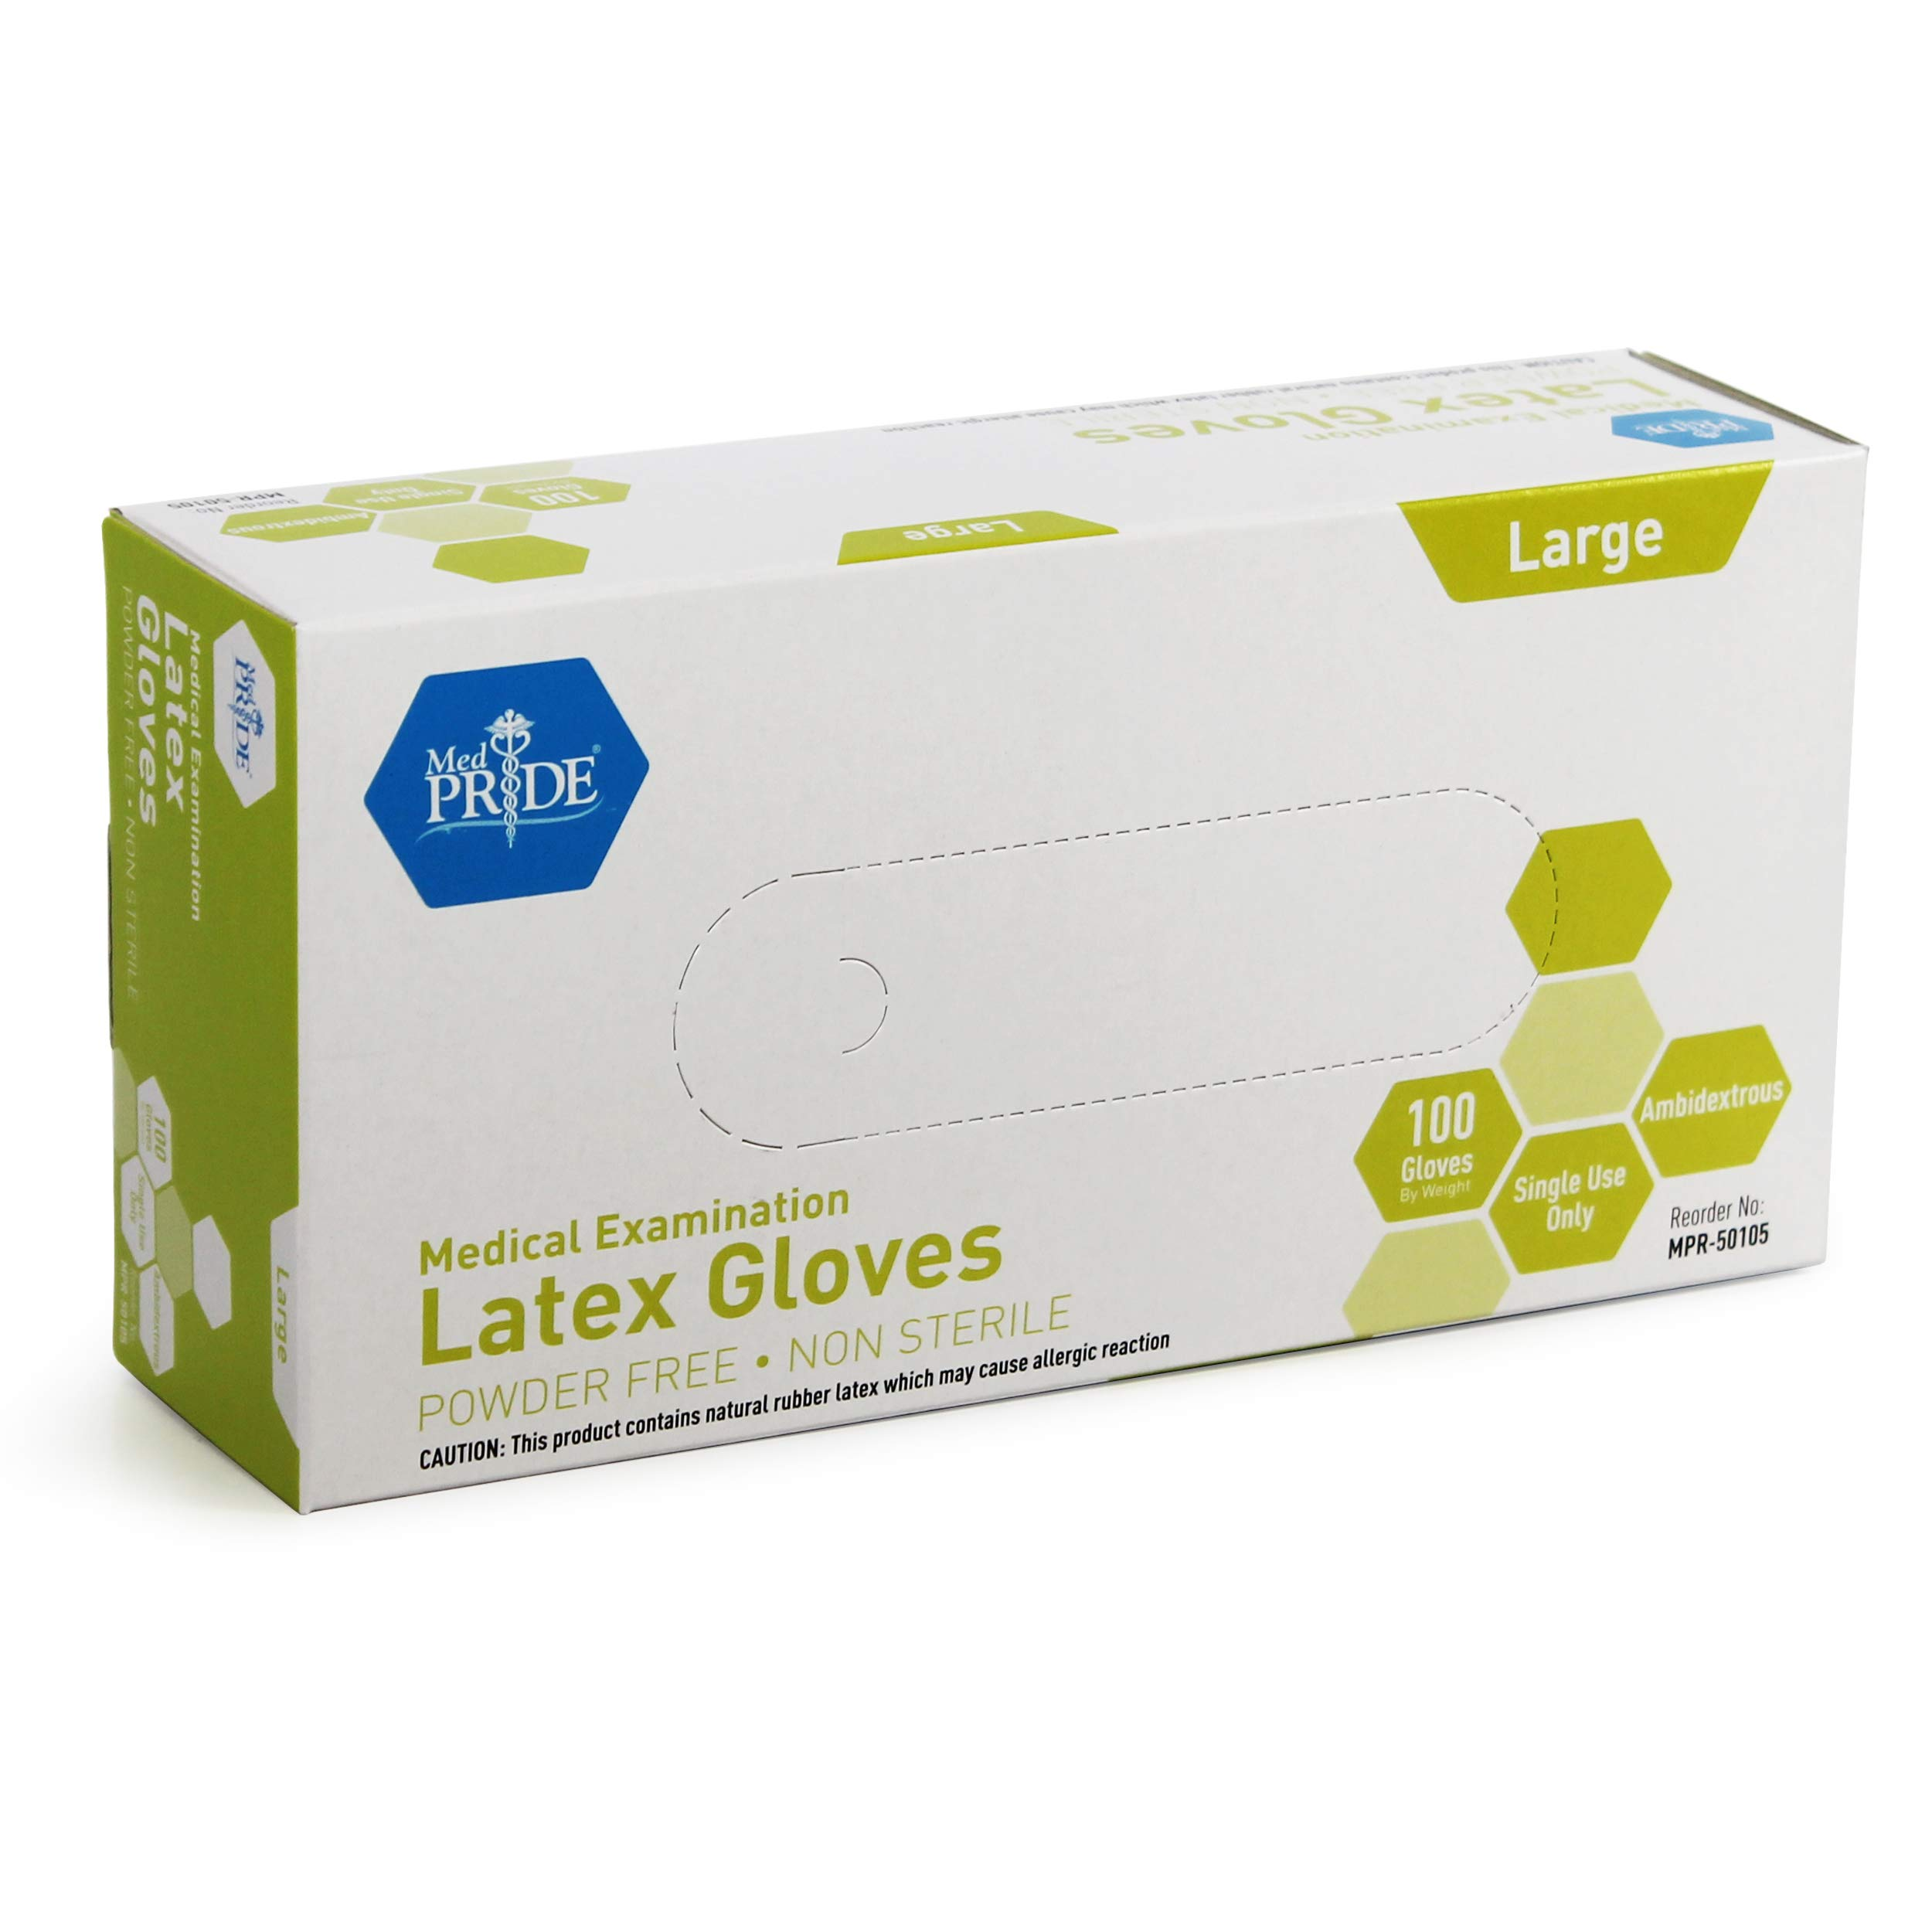 Medpride Medical Exam Latex Gloves| 5 mil Thick, Large Case of 1000| Powder-Free, Non-Sterile, Heavy Duty Exam Gloves| Professional Grade for Hospitals, Law Enforcement, Food Vendors, Tattoo Artists by MED PRIDE (Image #4)